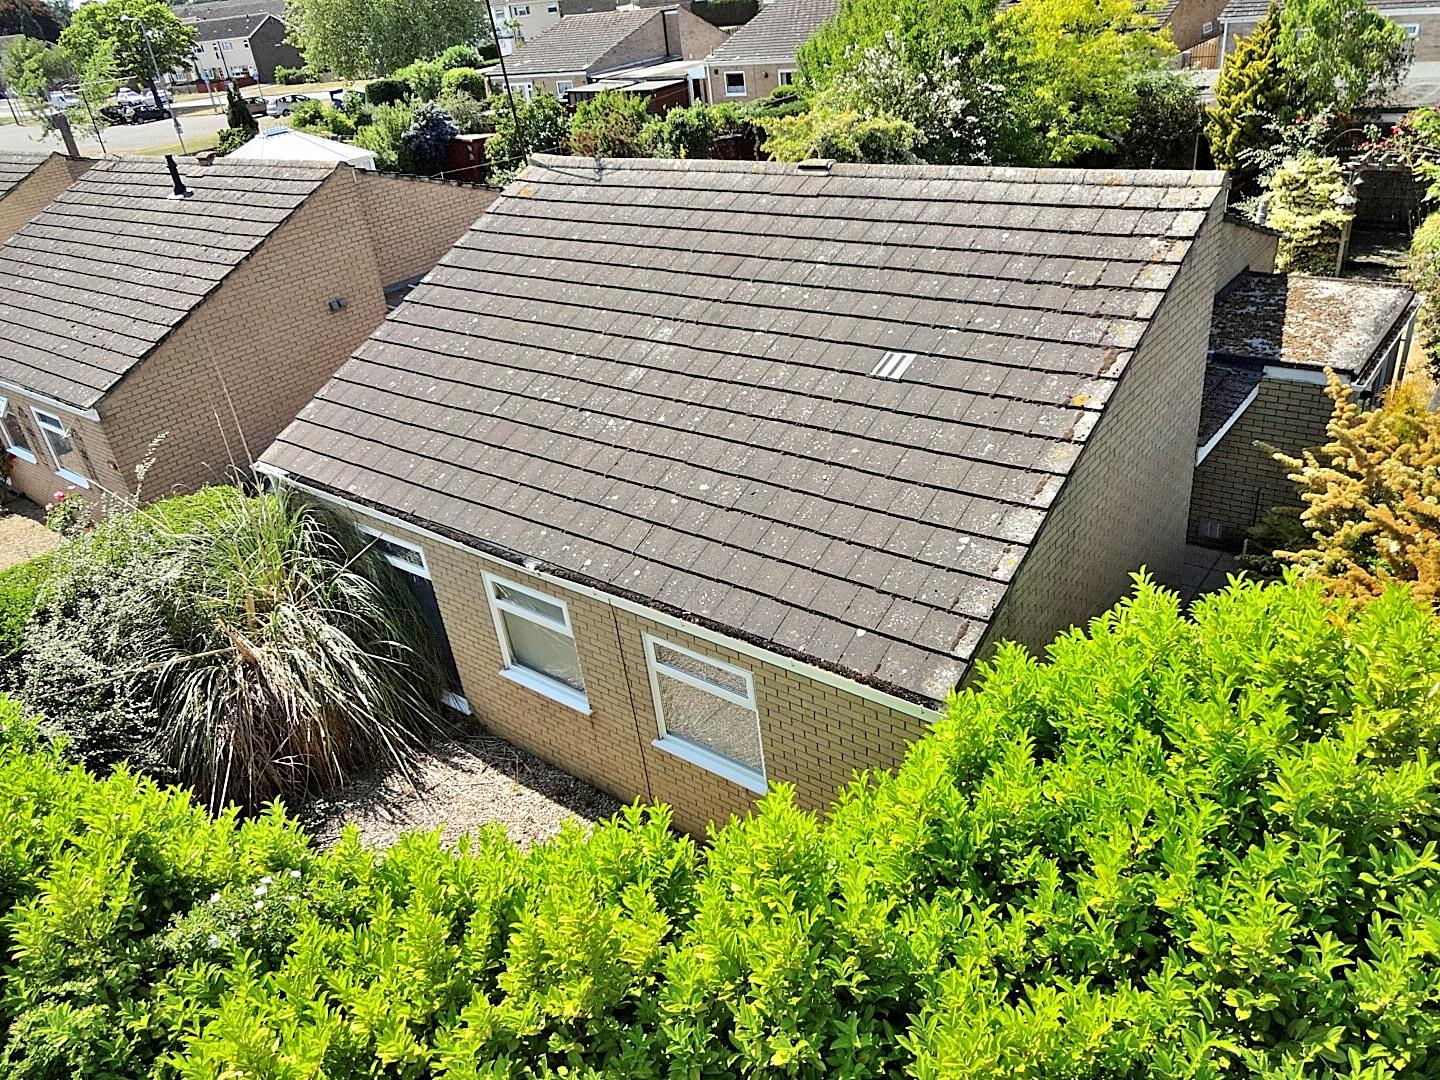 3 bed detached bungalow for sale in King's Lynn, PE30 4XH - Property Image 1